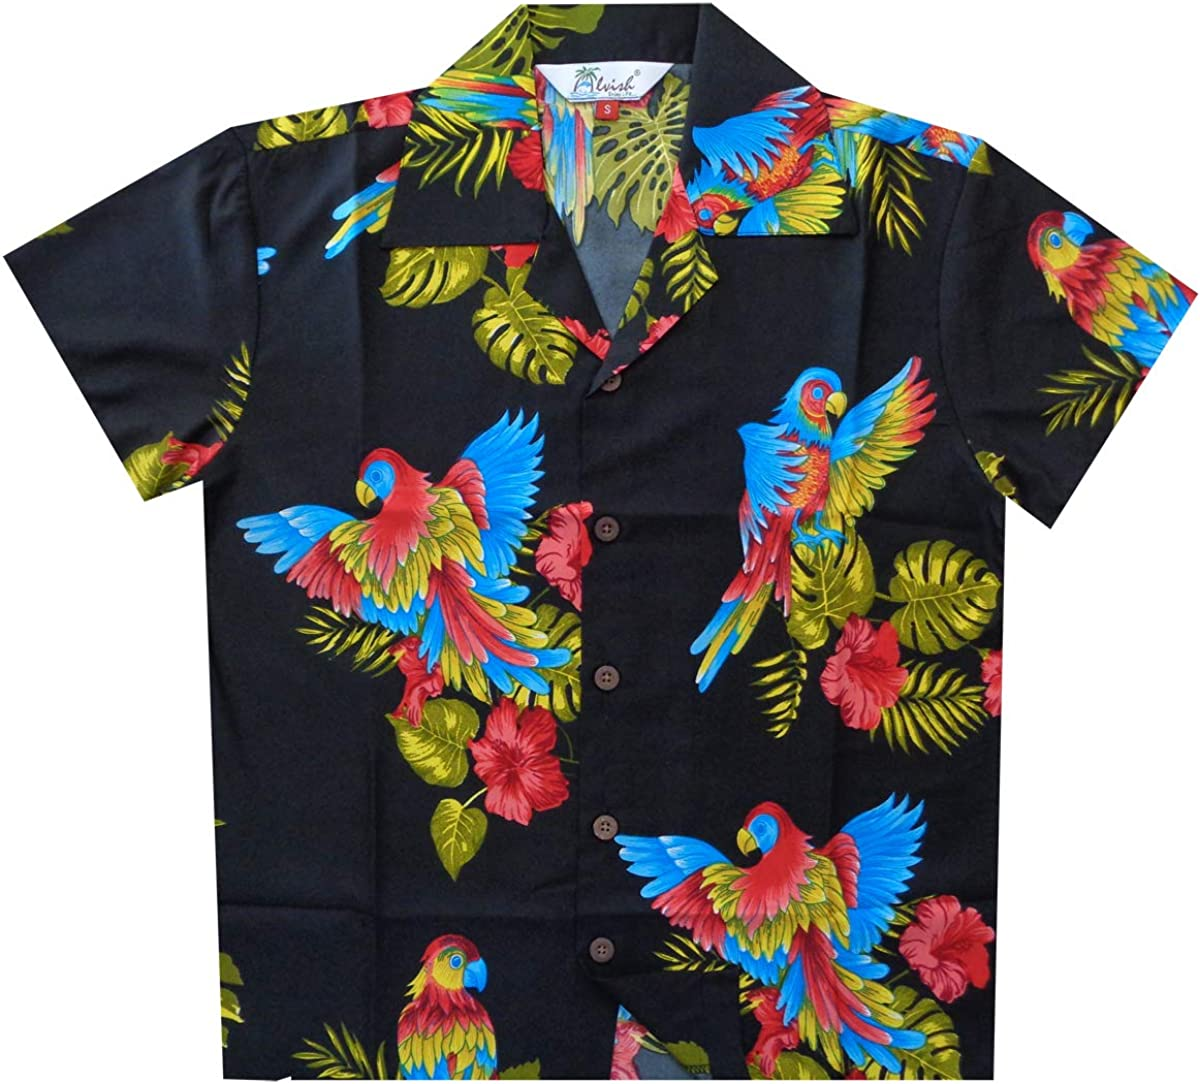 Boys Coconut Tree Print Beach Tops Baby Aloha Hawaiian Shirt 1-5 Years Old